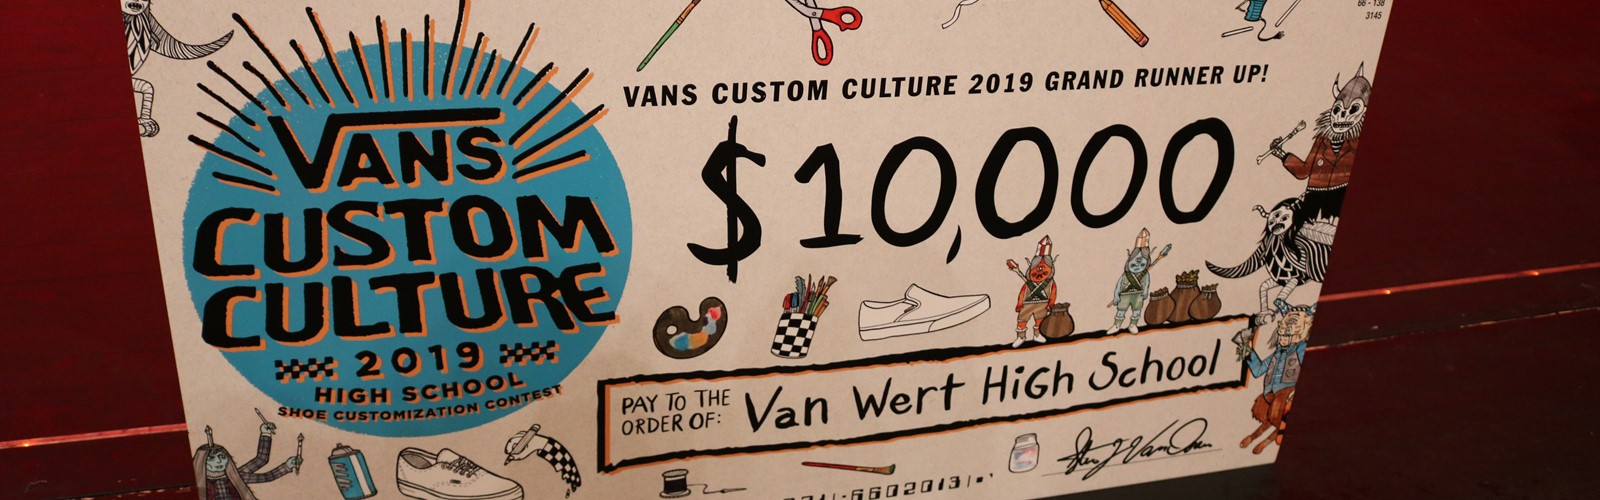 Vans Custom Culture contest runner up $10,000 check